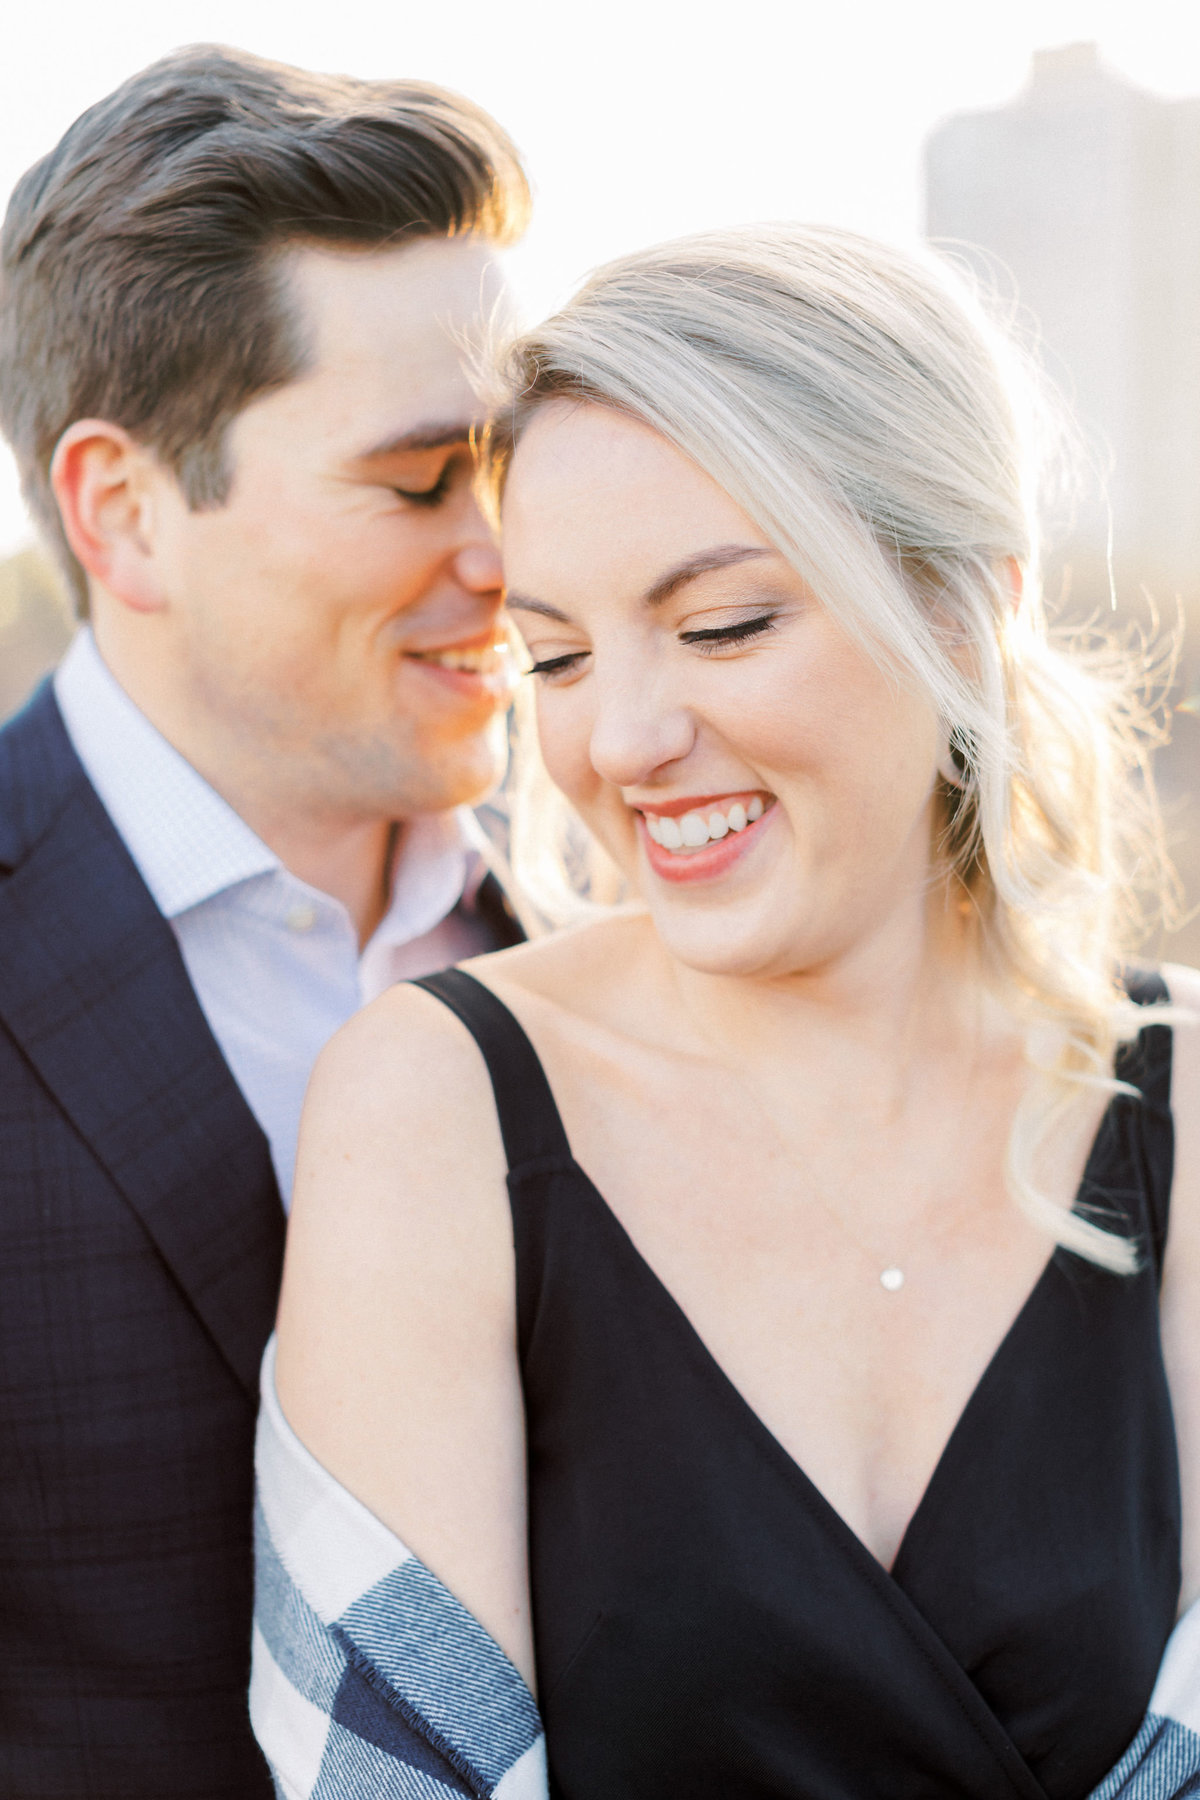 TiffaneyChildsPhotography-ChicagoWeddingPhotographer-AnneMarie+Connor-LincolnParkNatureBoardwalkEngagementSession-60